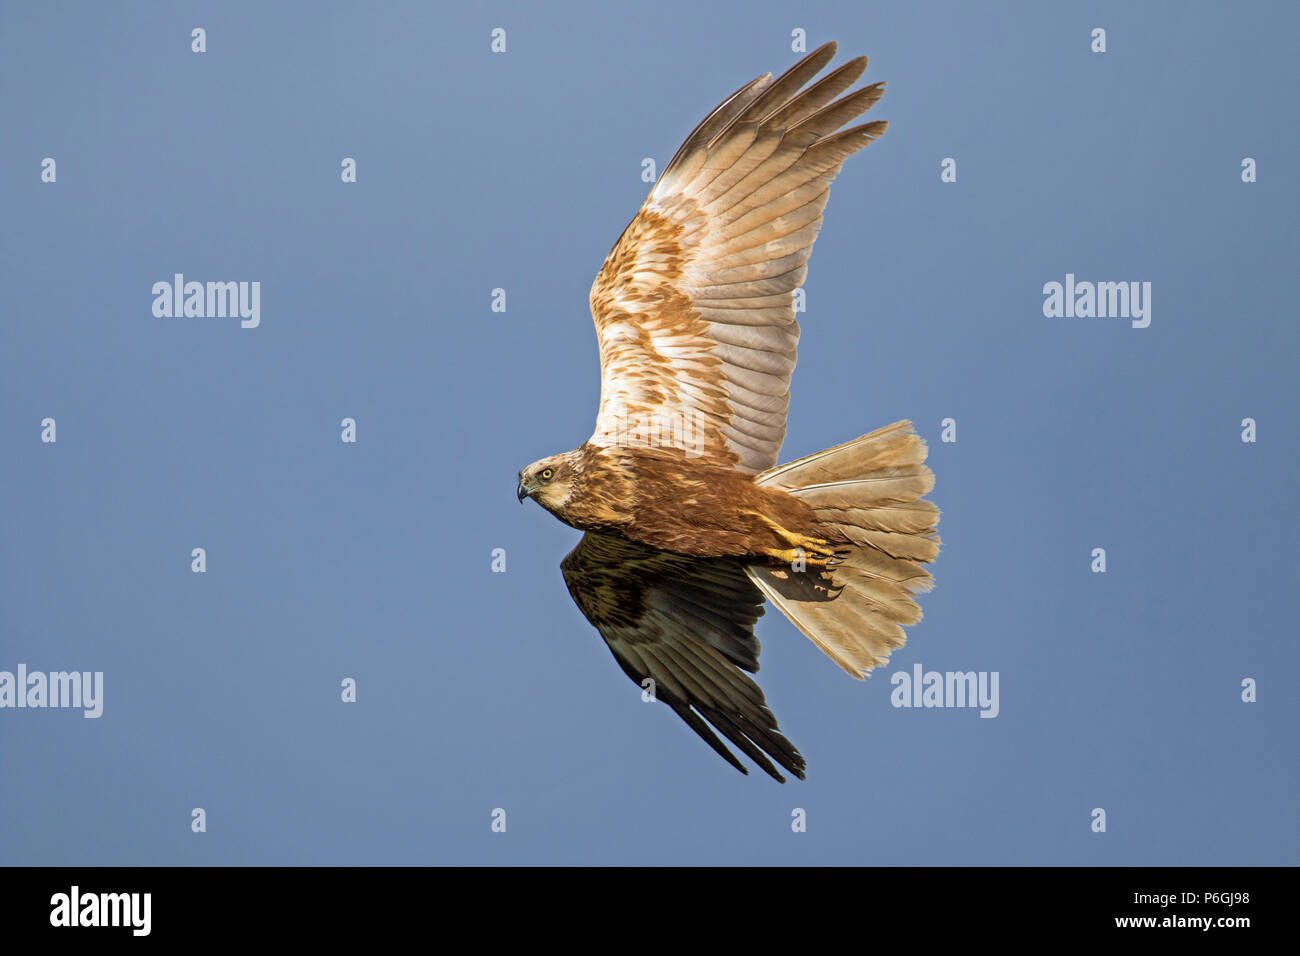 Female Marsh Harrier (Circus aeruginosus) in flight, Cambridgeshire, England Stock Photo